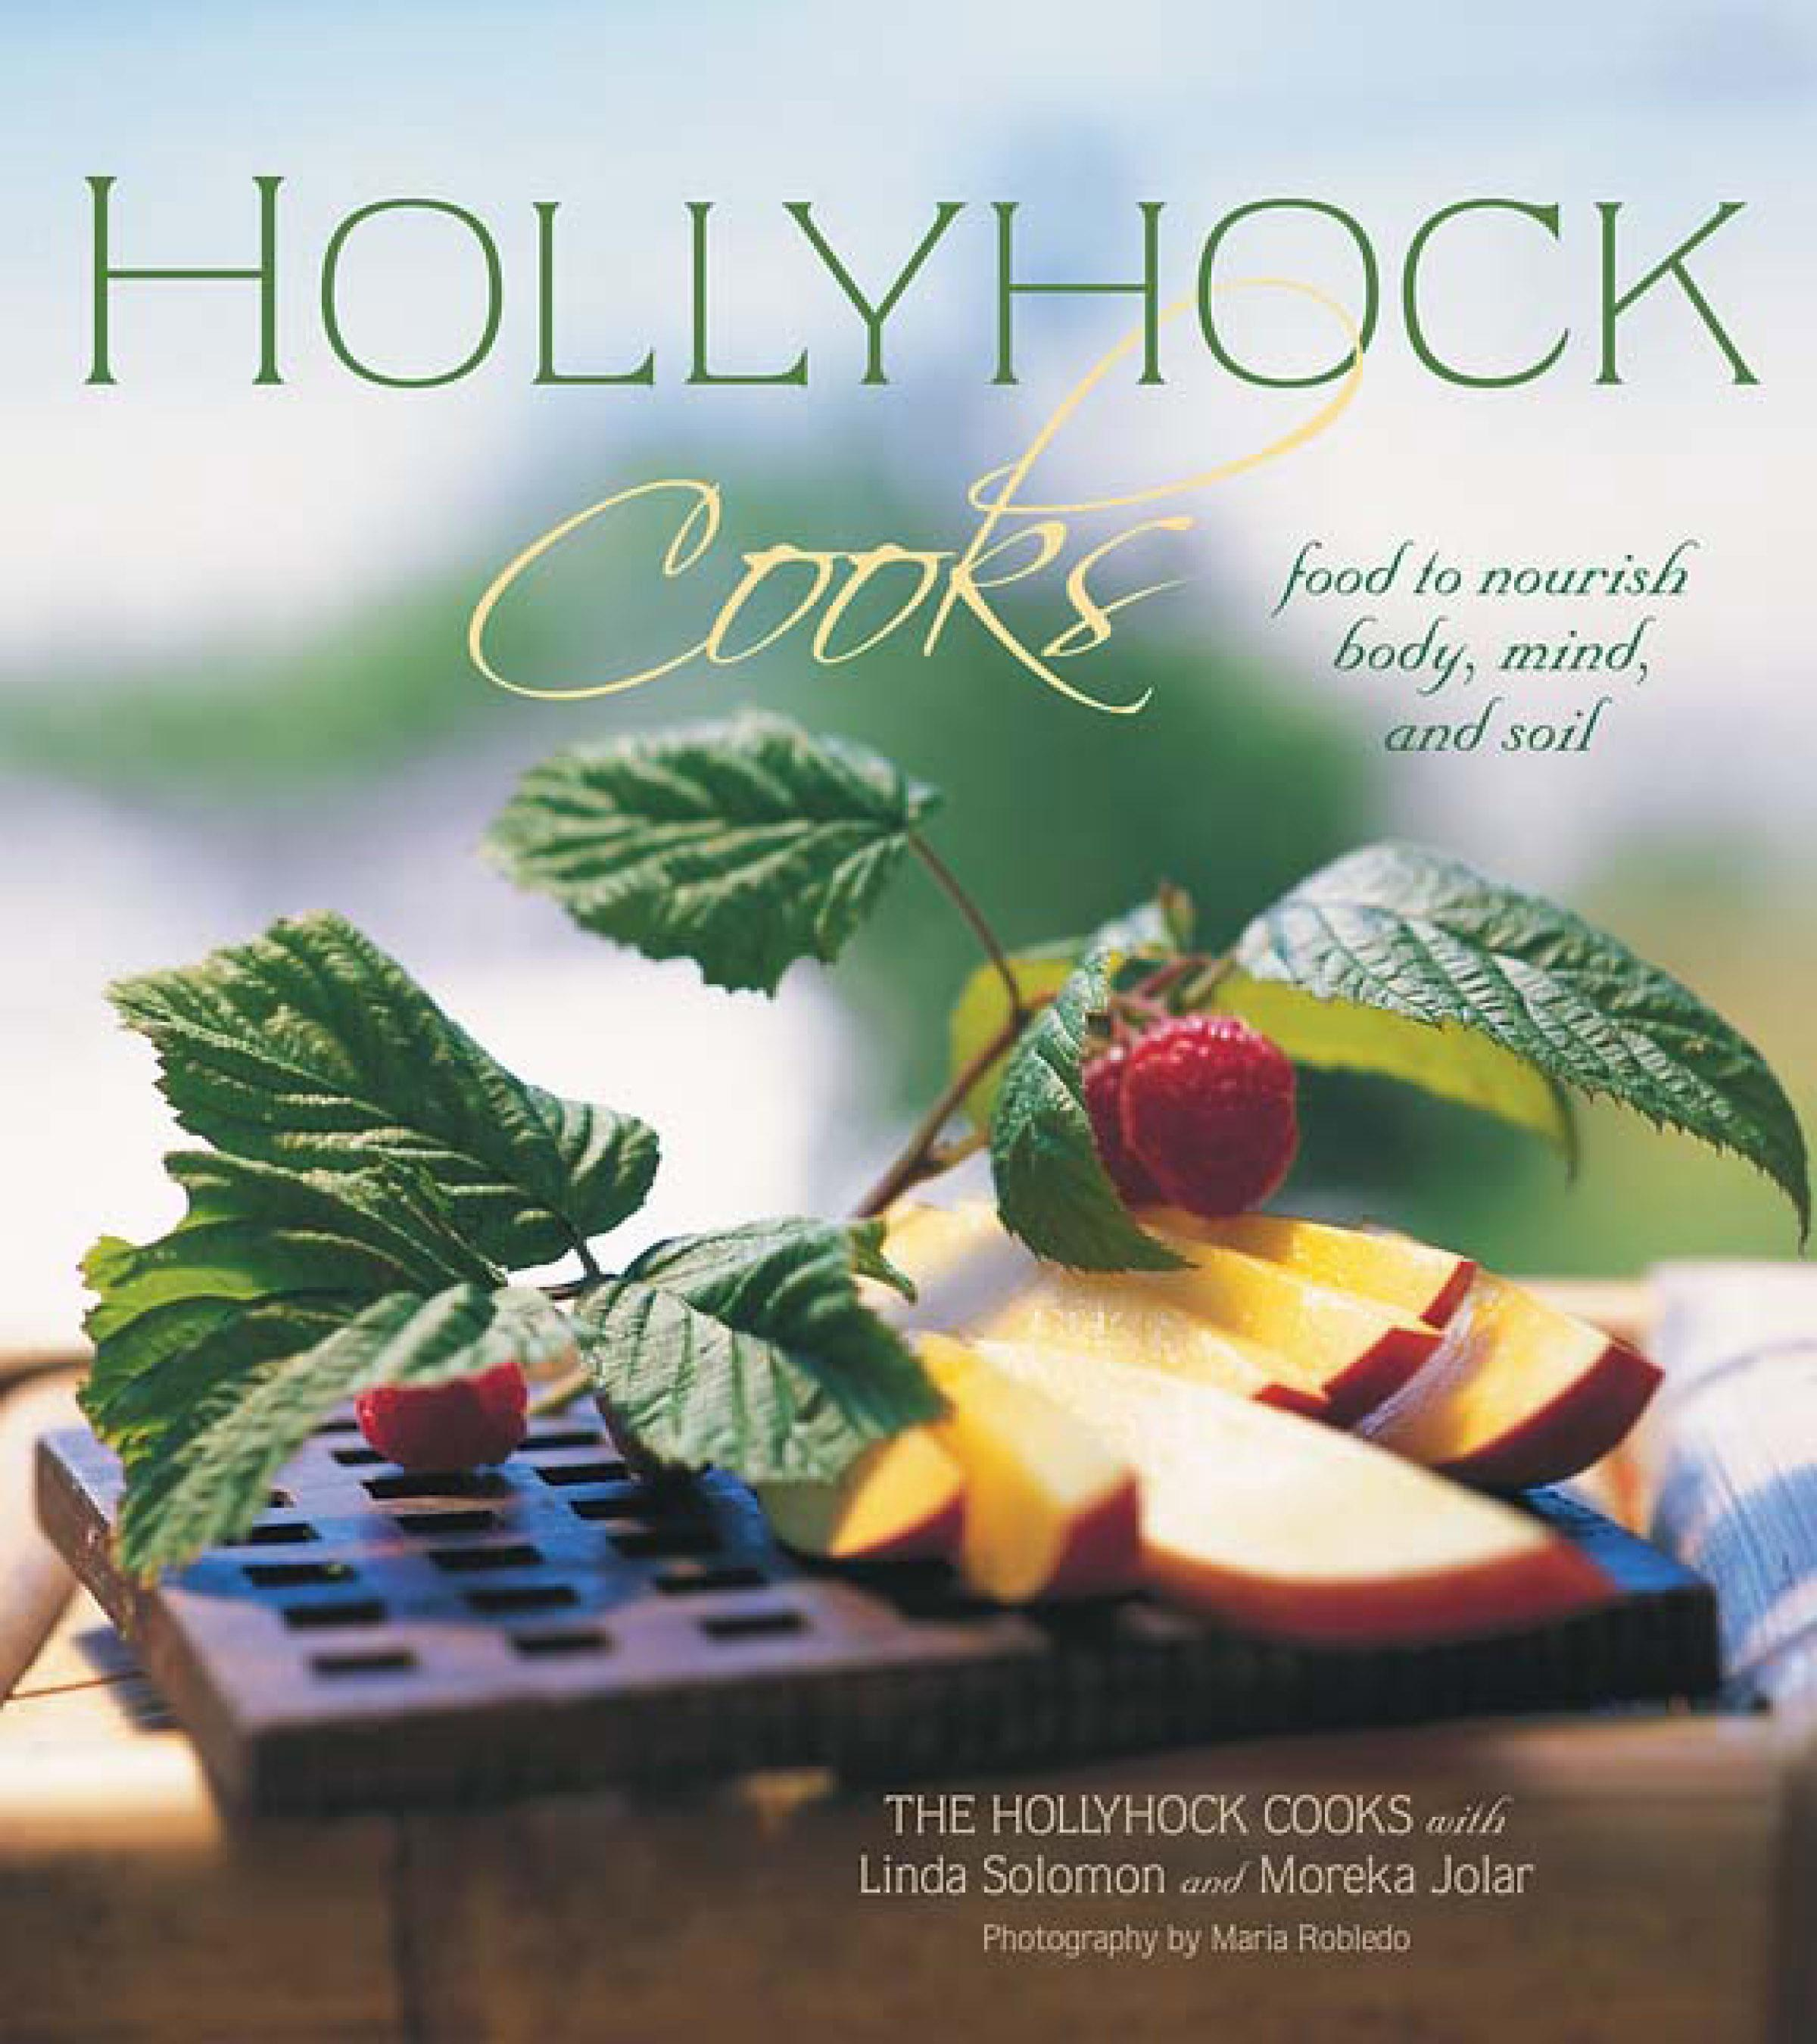 Hollyhock Cooks: Food to Nourish Body, Mind and Soil EB9781550923902